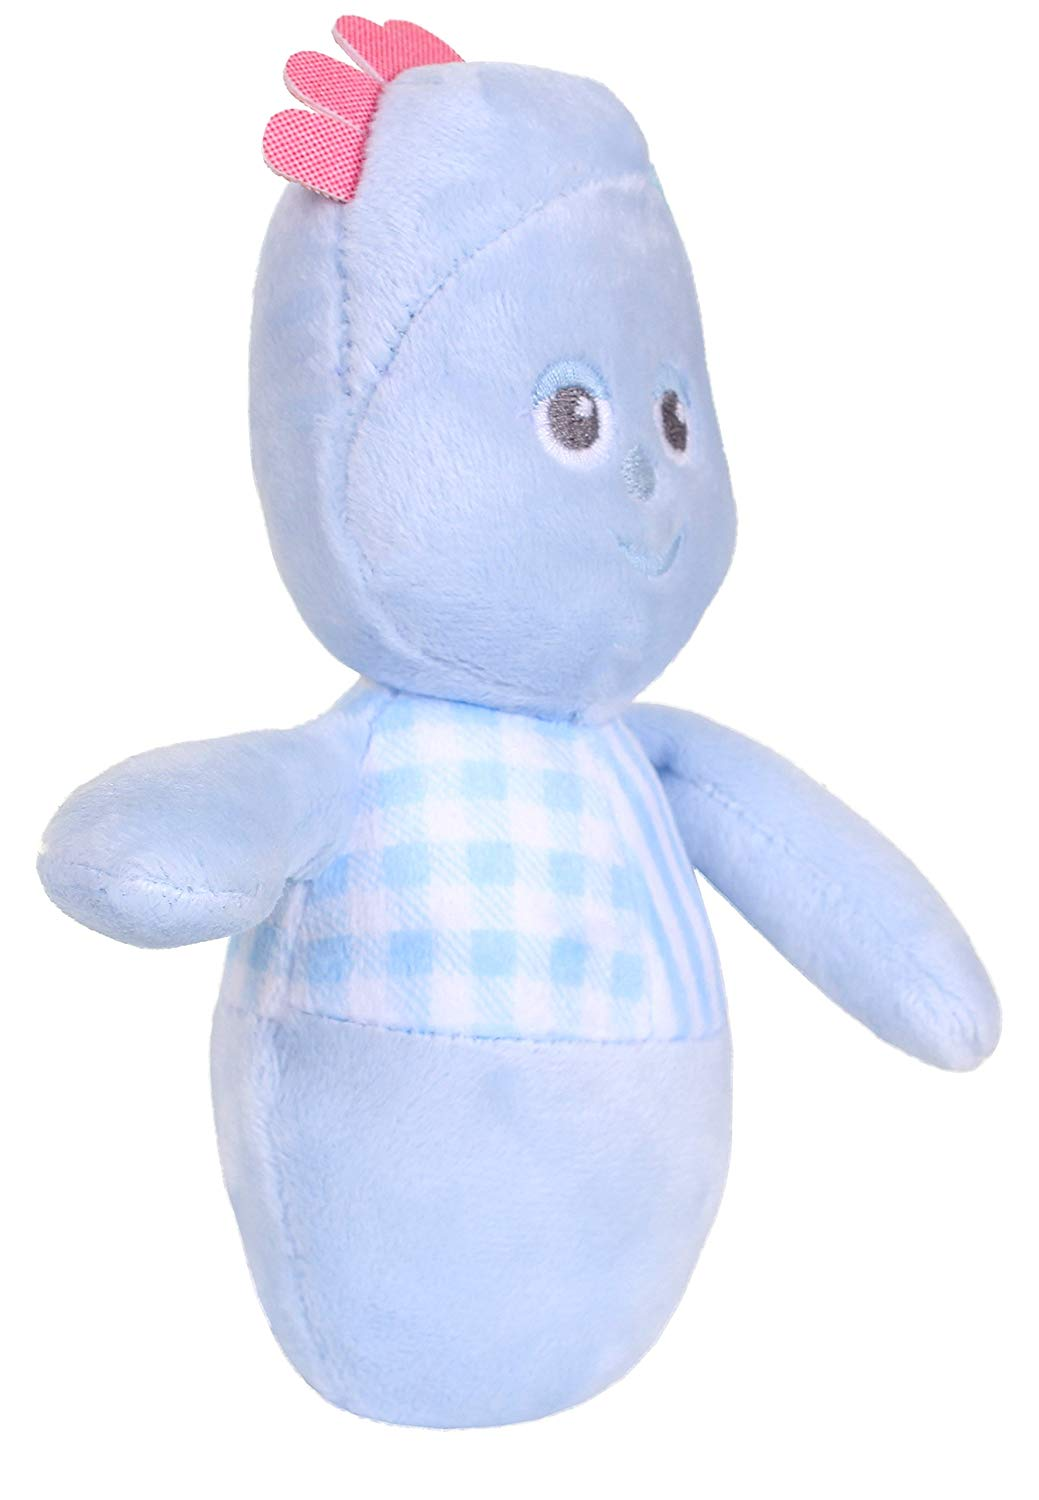 In the Night Garden Baby Hanging Chime Toy Igglepiggle